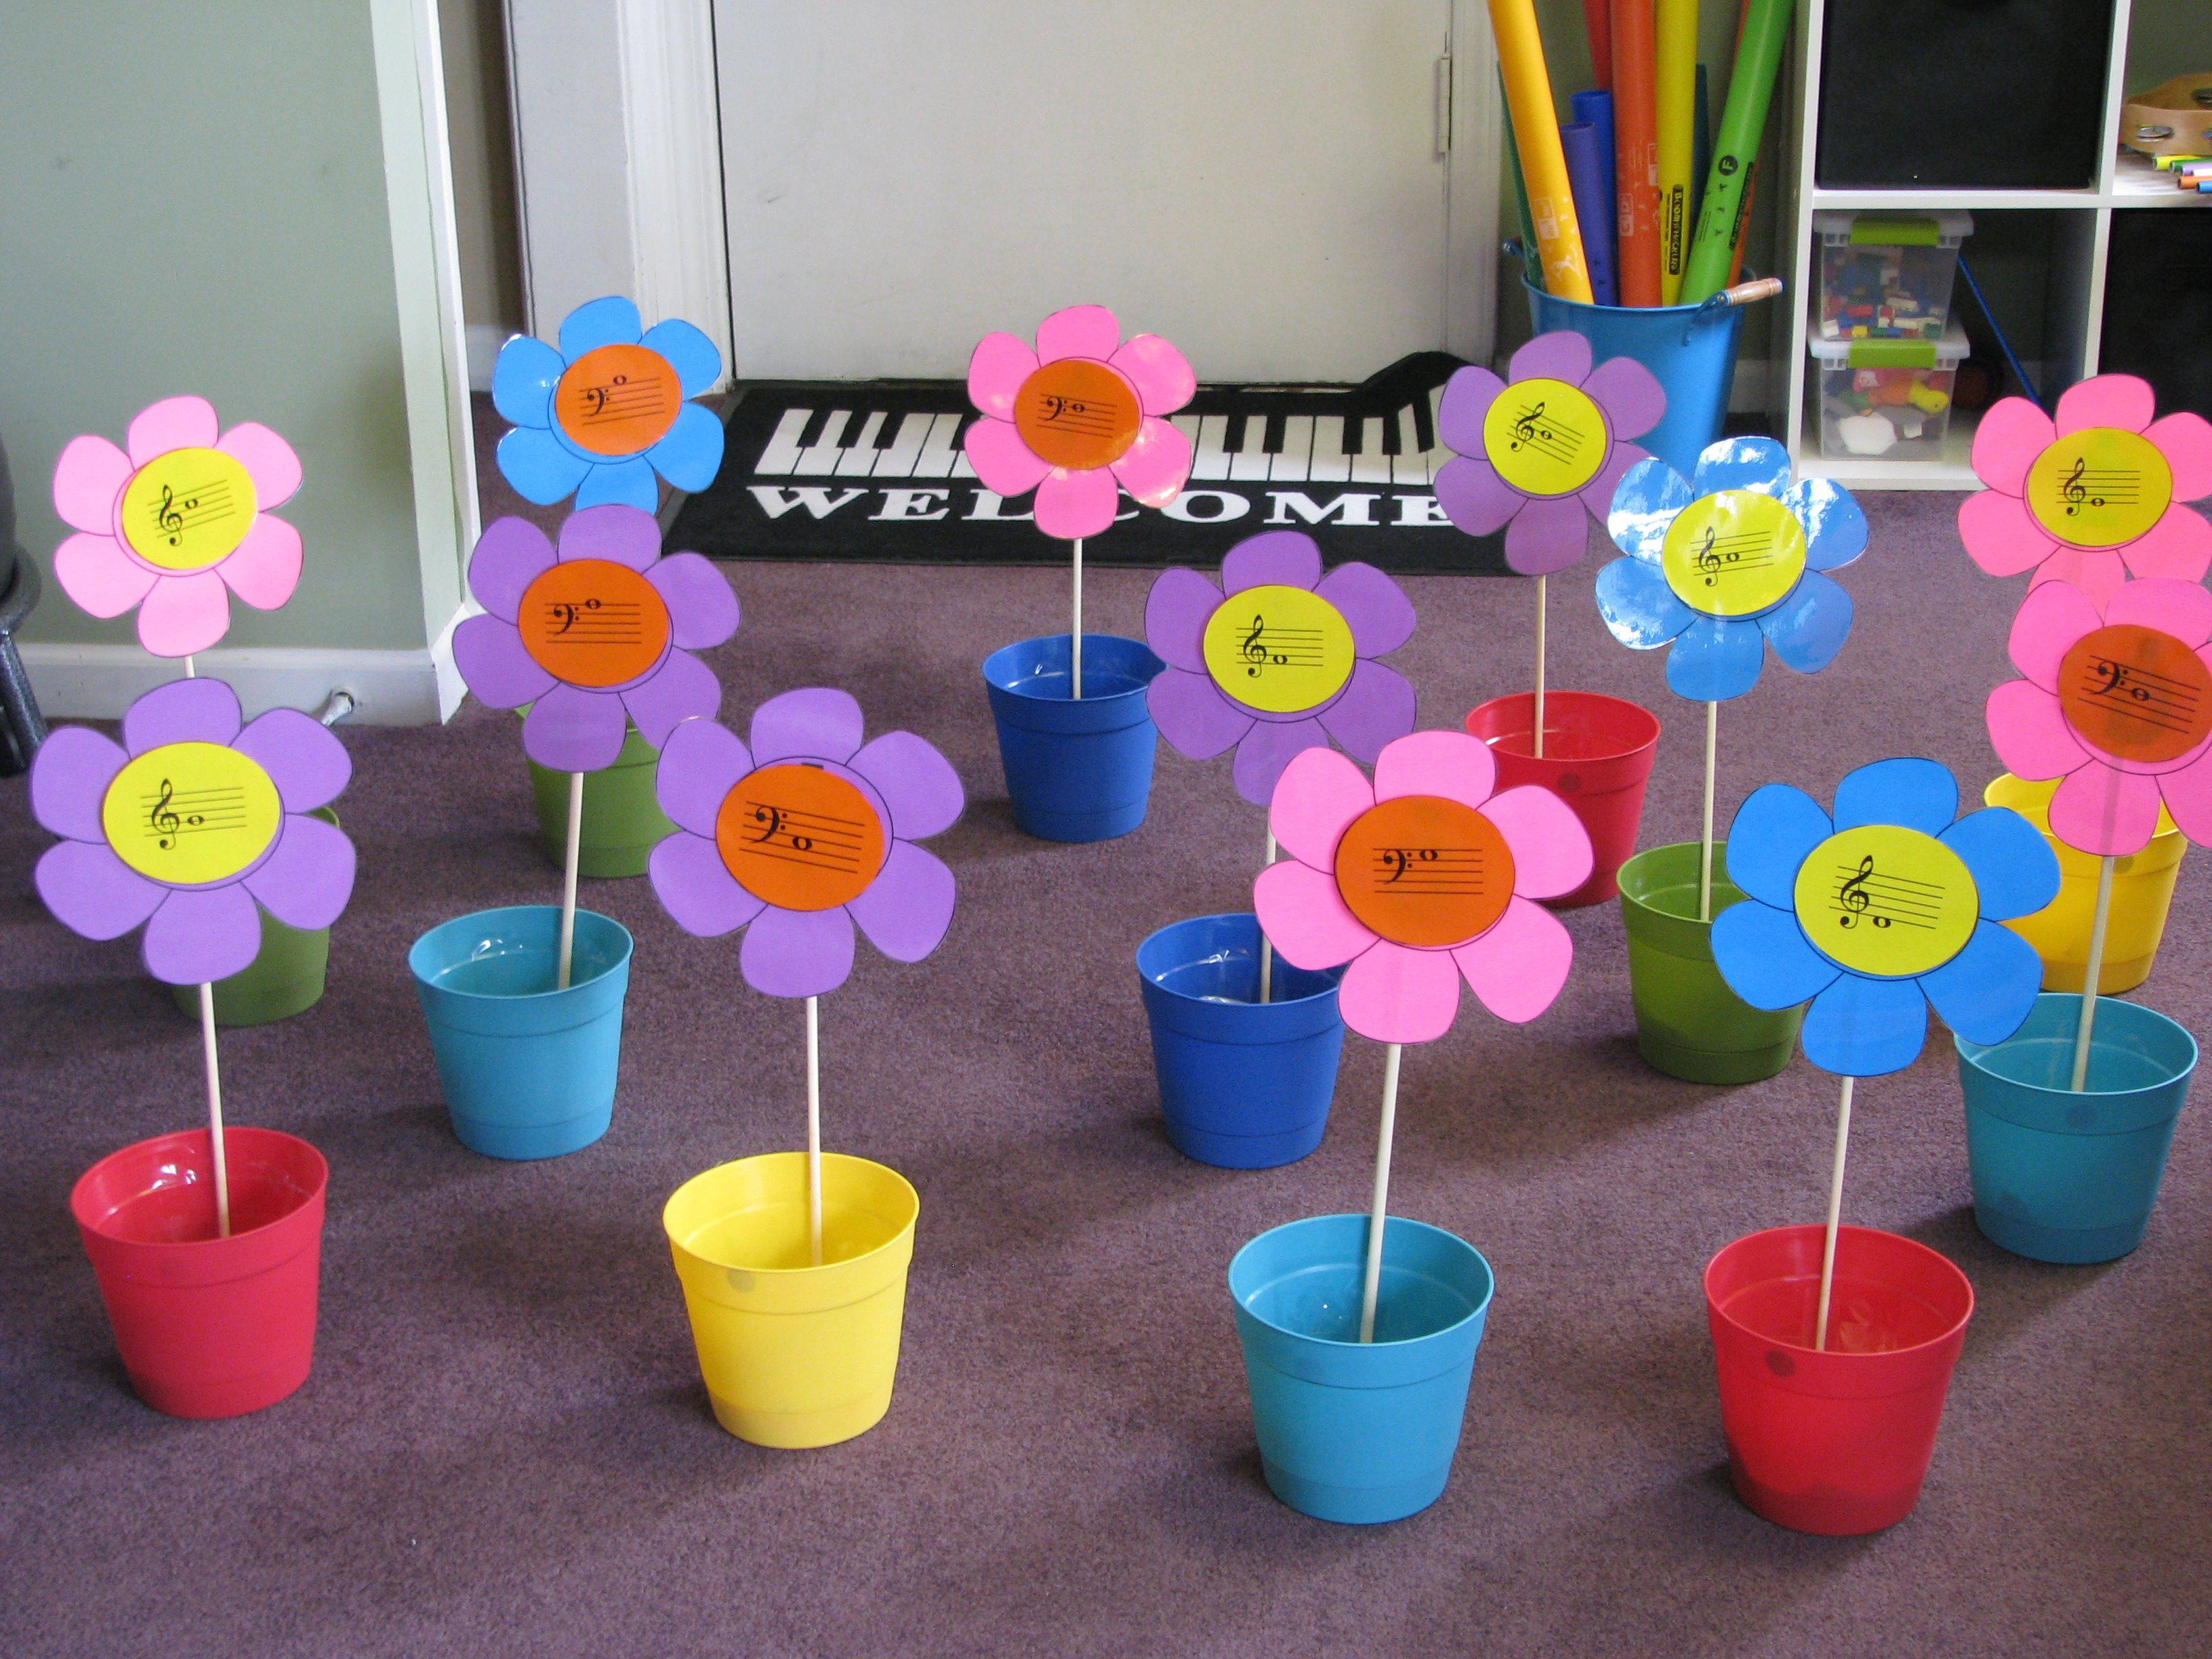 Flower pot note toss game. Fun! (She has templates and